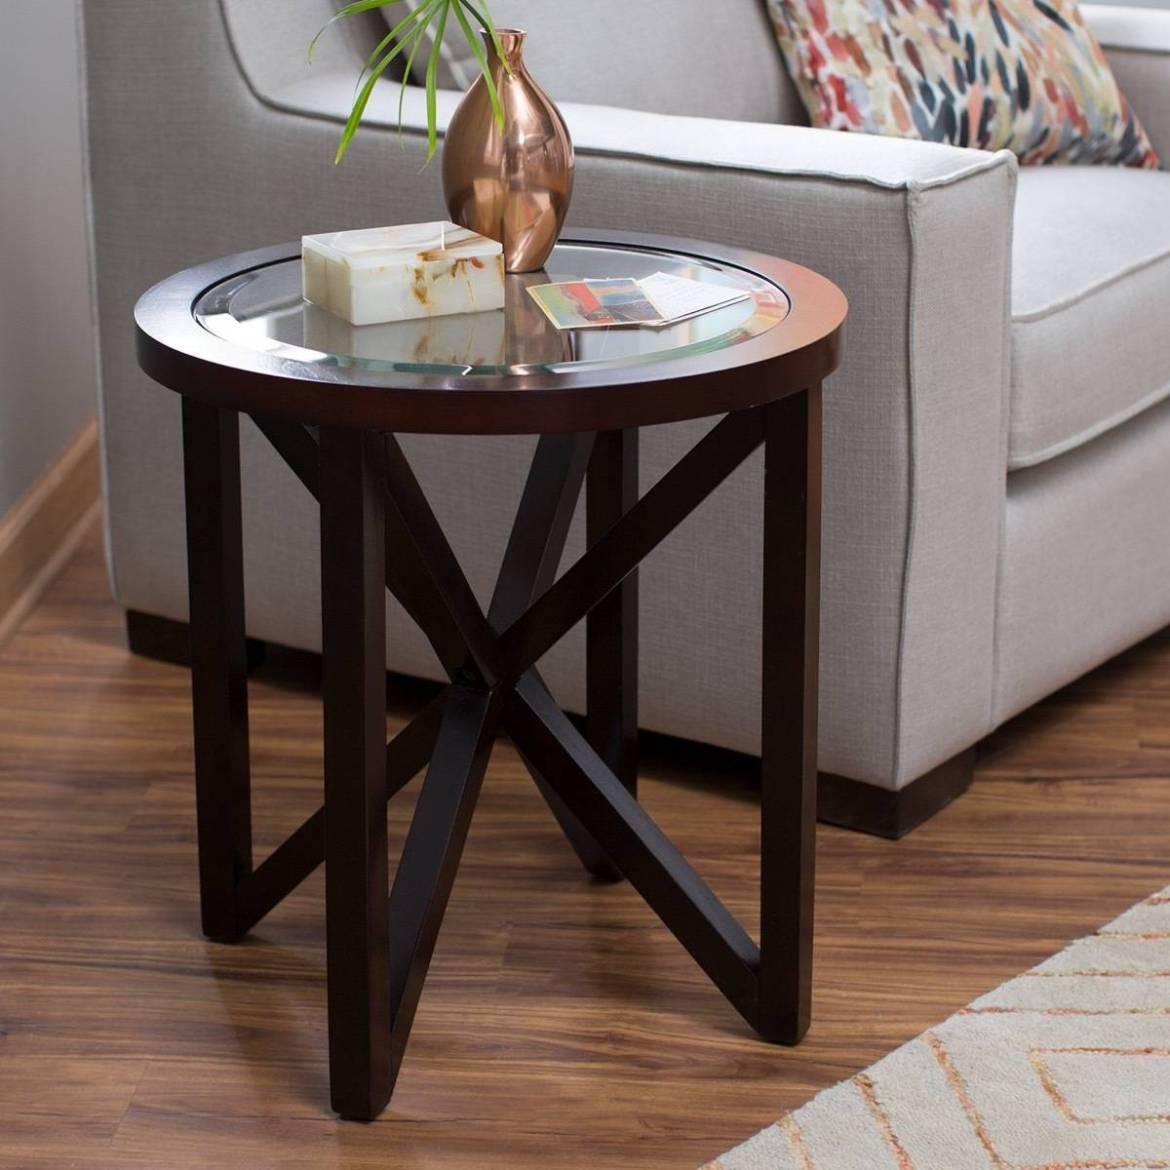 Webster round end table from Hayneedle